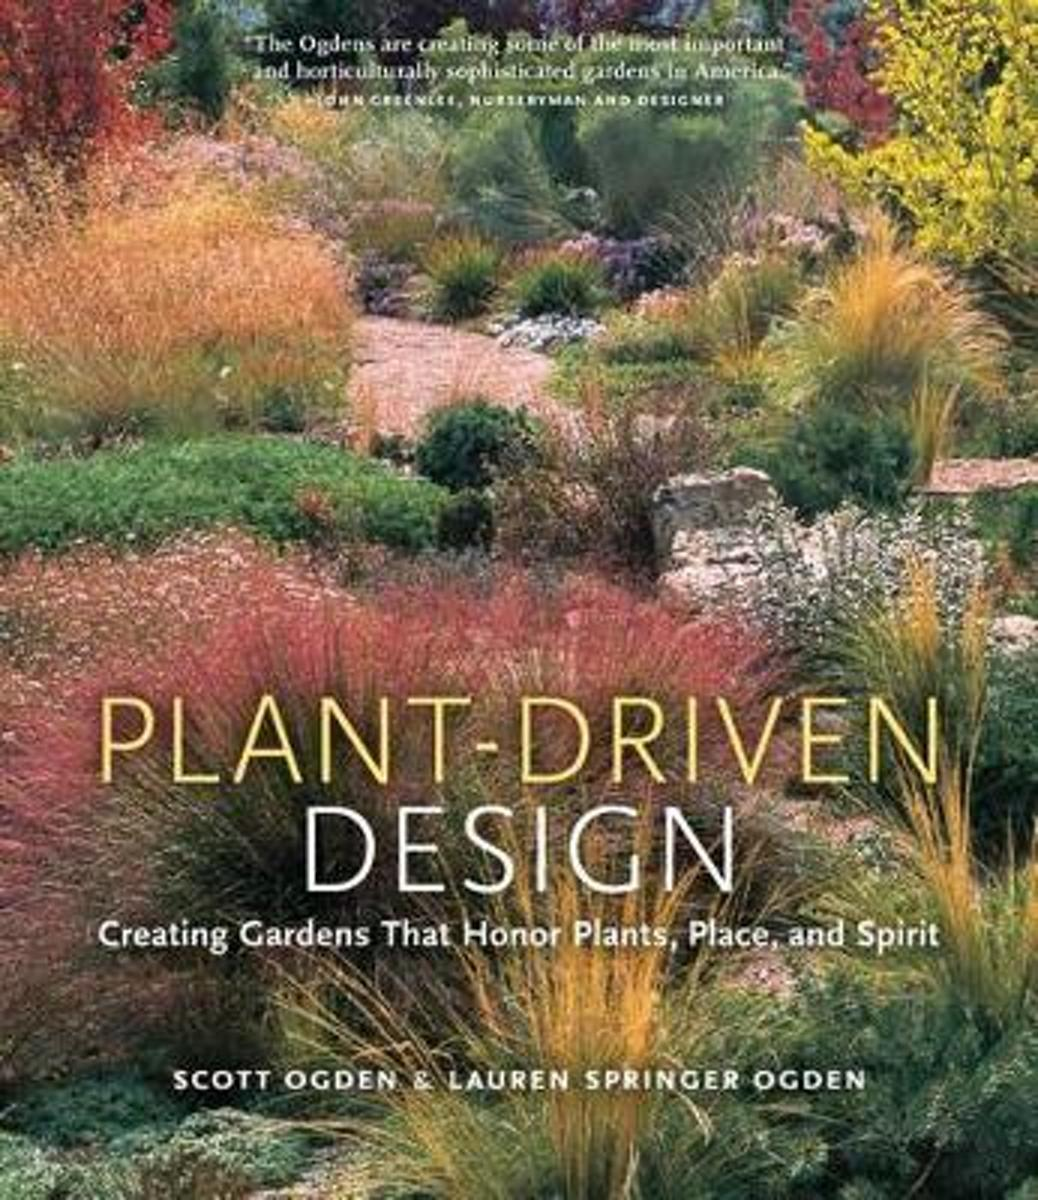 Plant Driven Design - Creating Gardens That Honor Plants, Place, and Spirit [Hb]